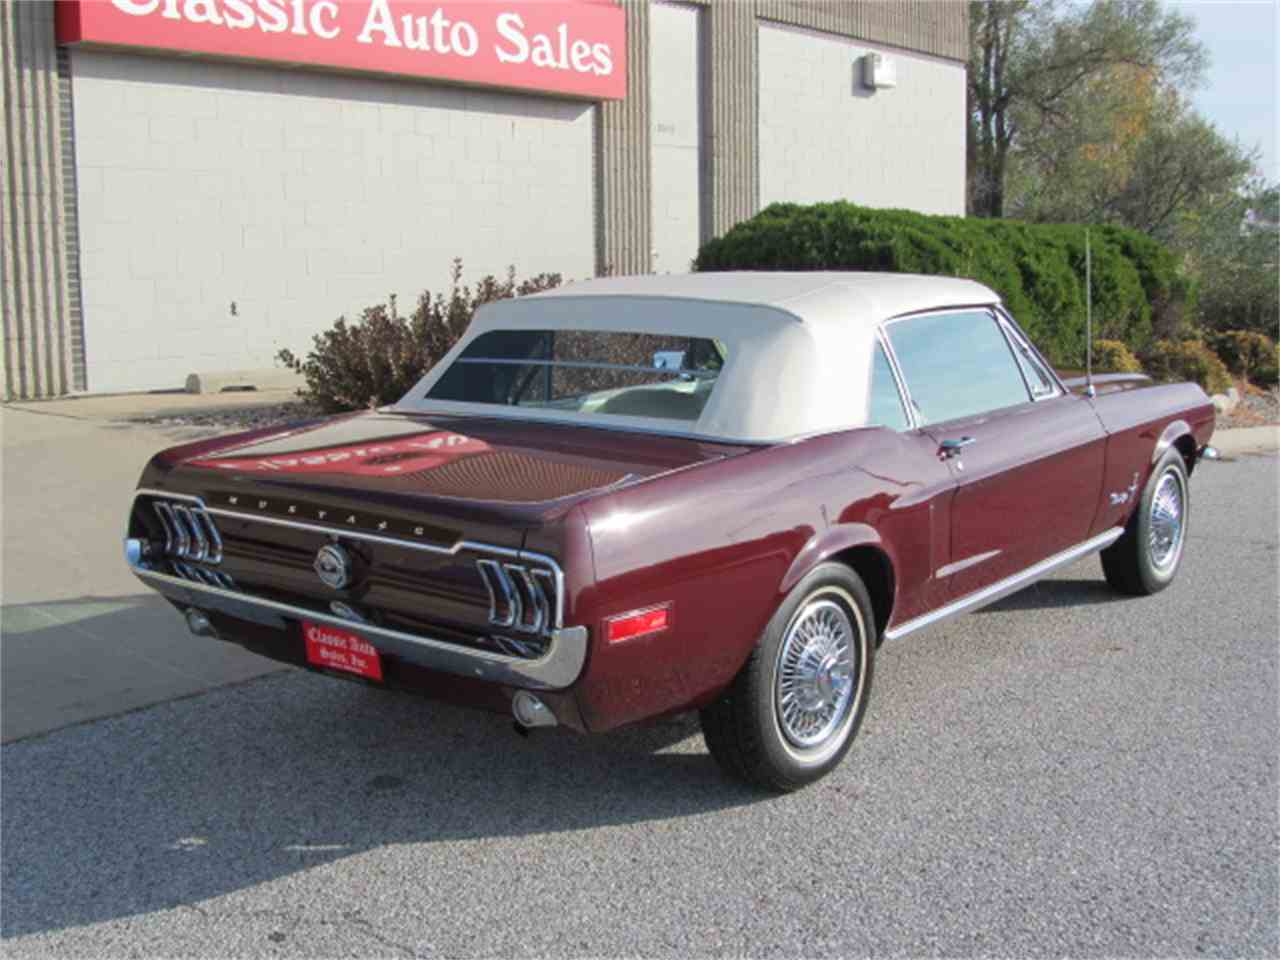 Large Picture of 1968 Ford Mustang located in Nebraska Offered by Classic Auto Sales - JOGK